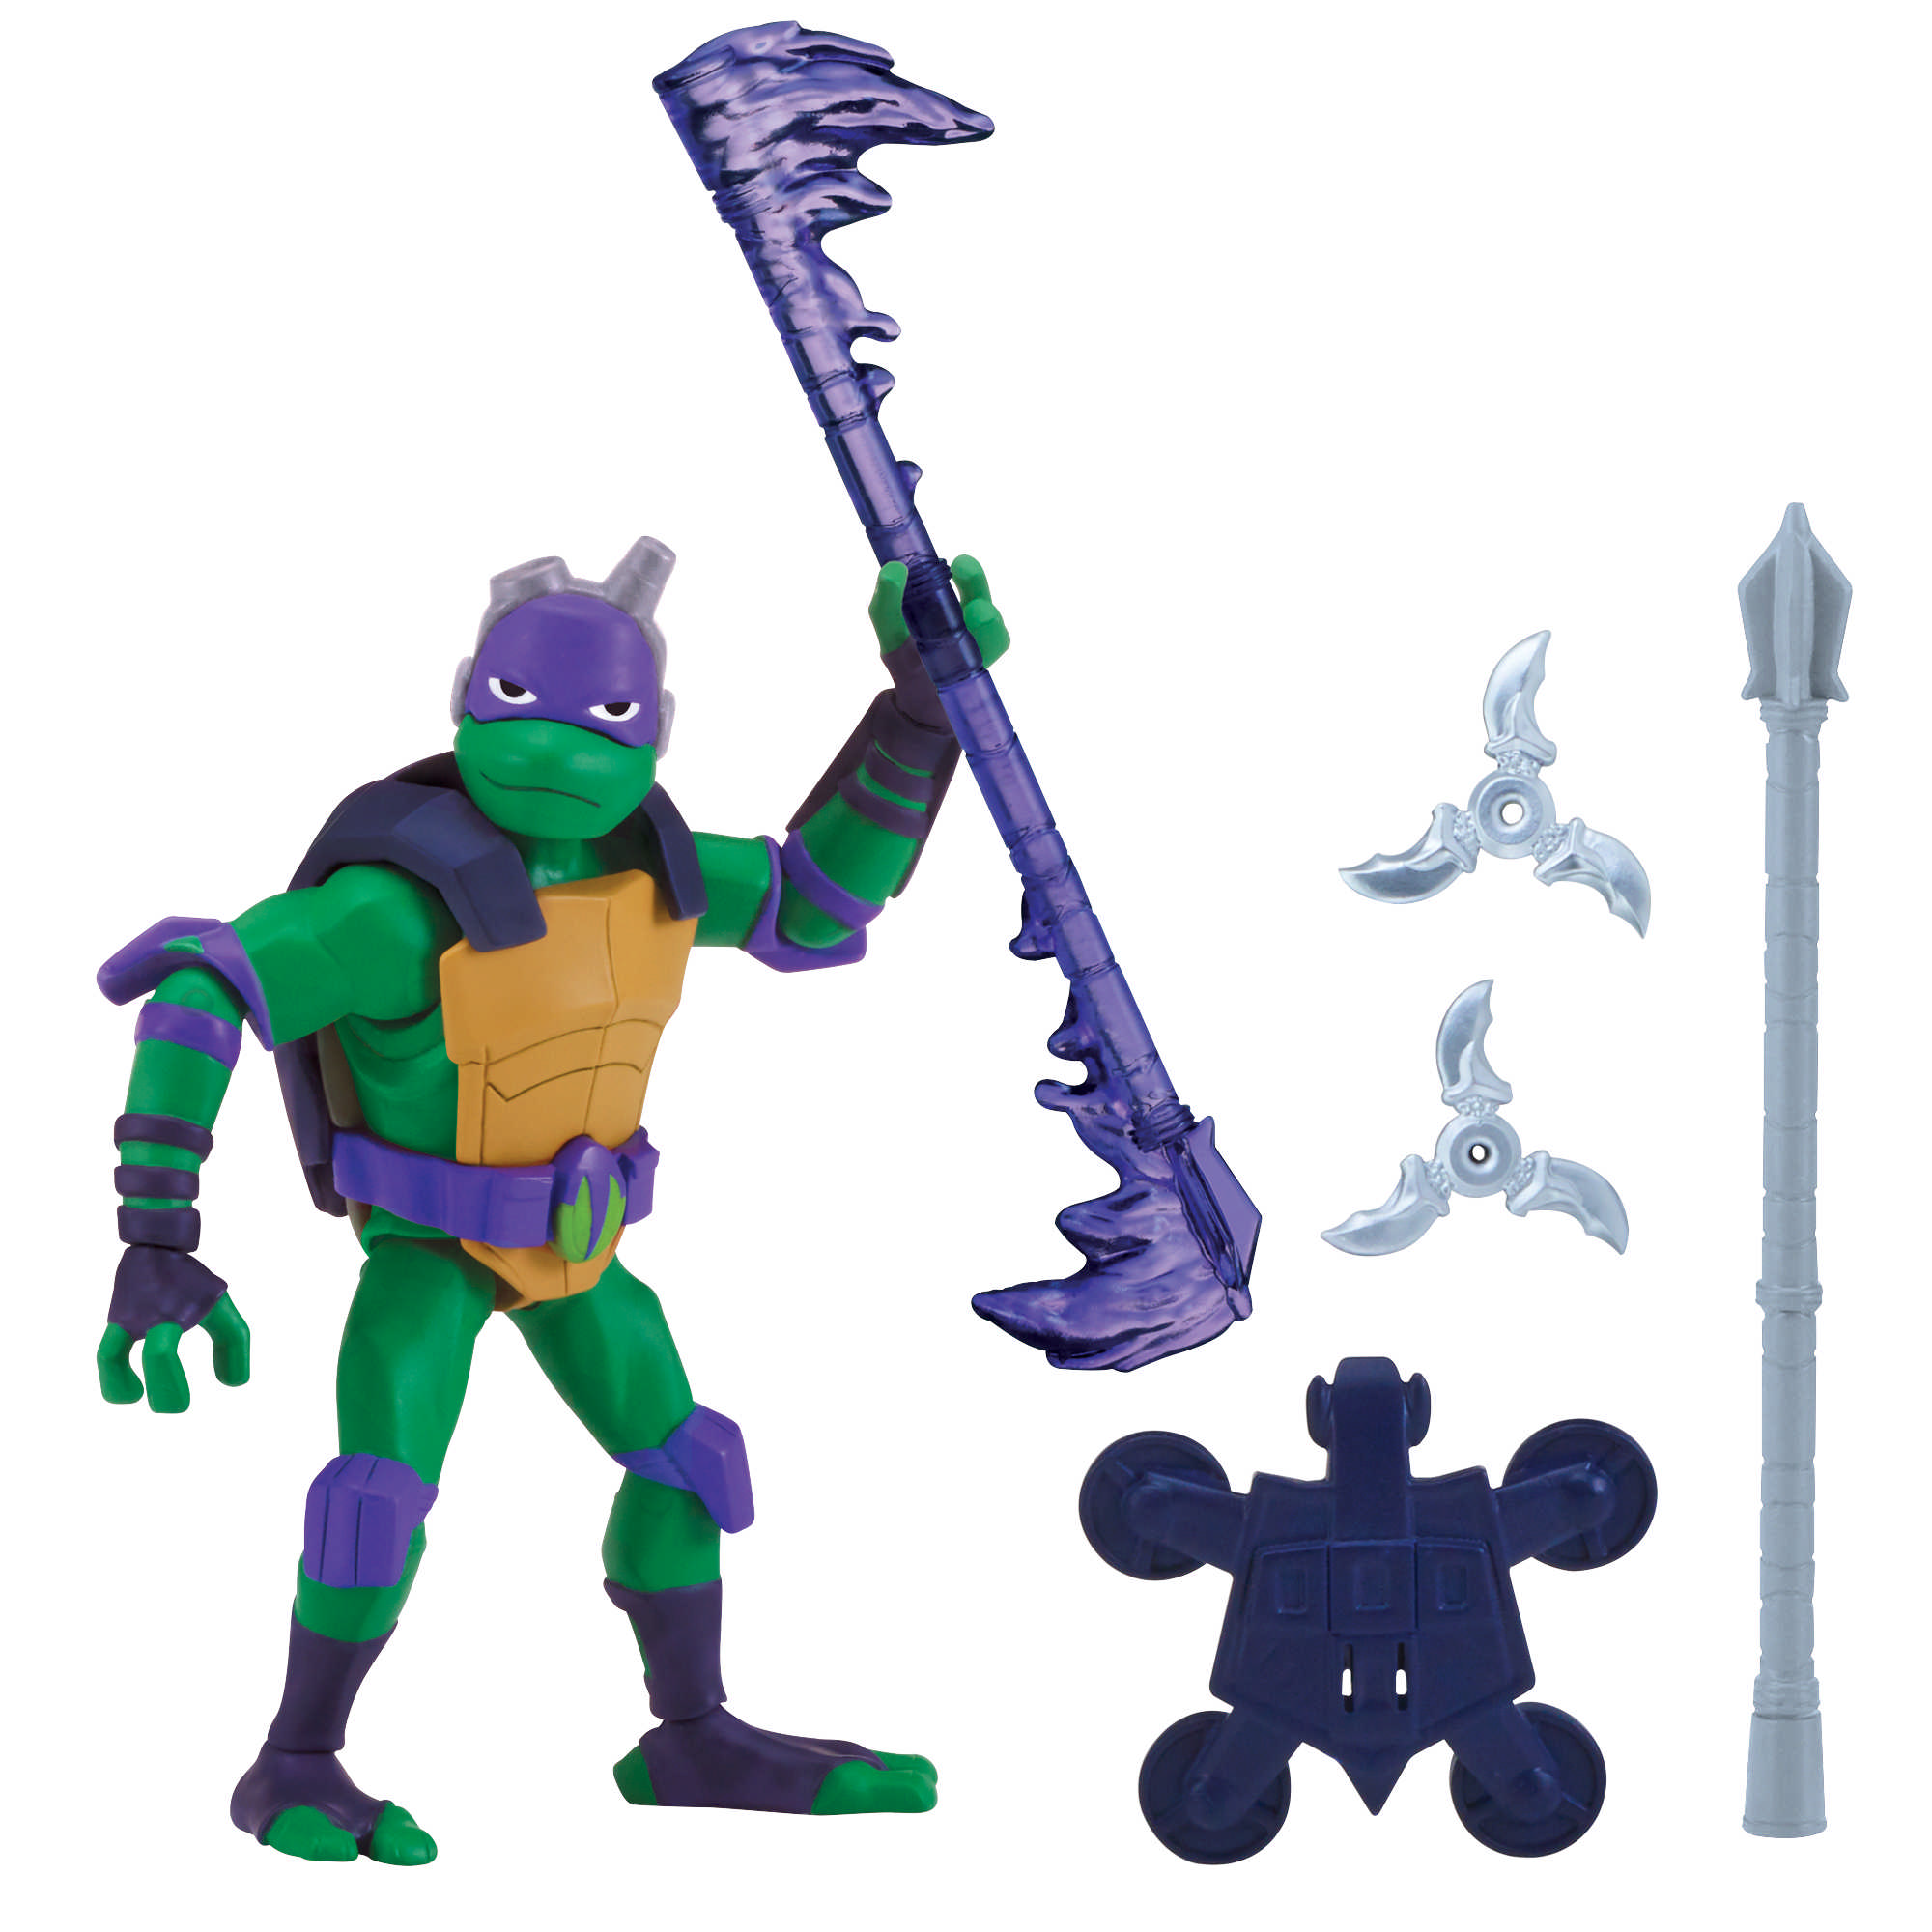 RISE OF THE TEENAGE MUTANT TURTLES Toy Images Reveal New ... Ninja Turtles Toy Ninja Turtles